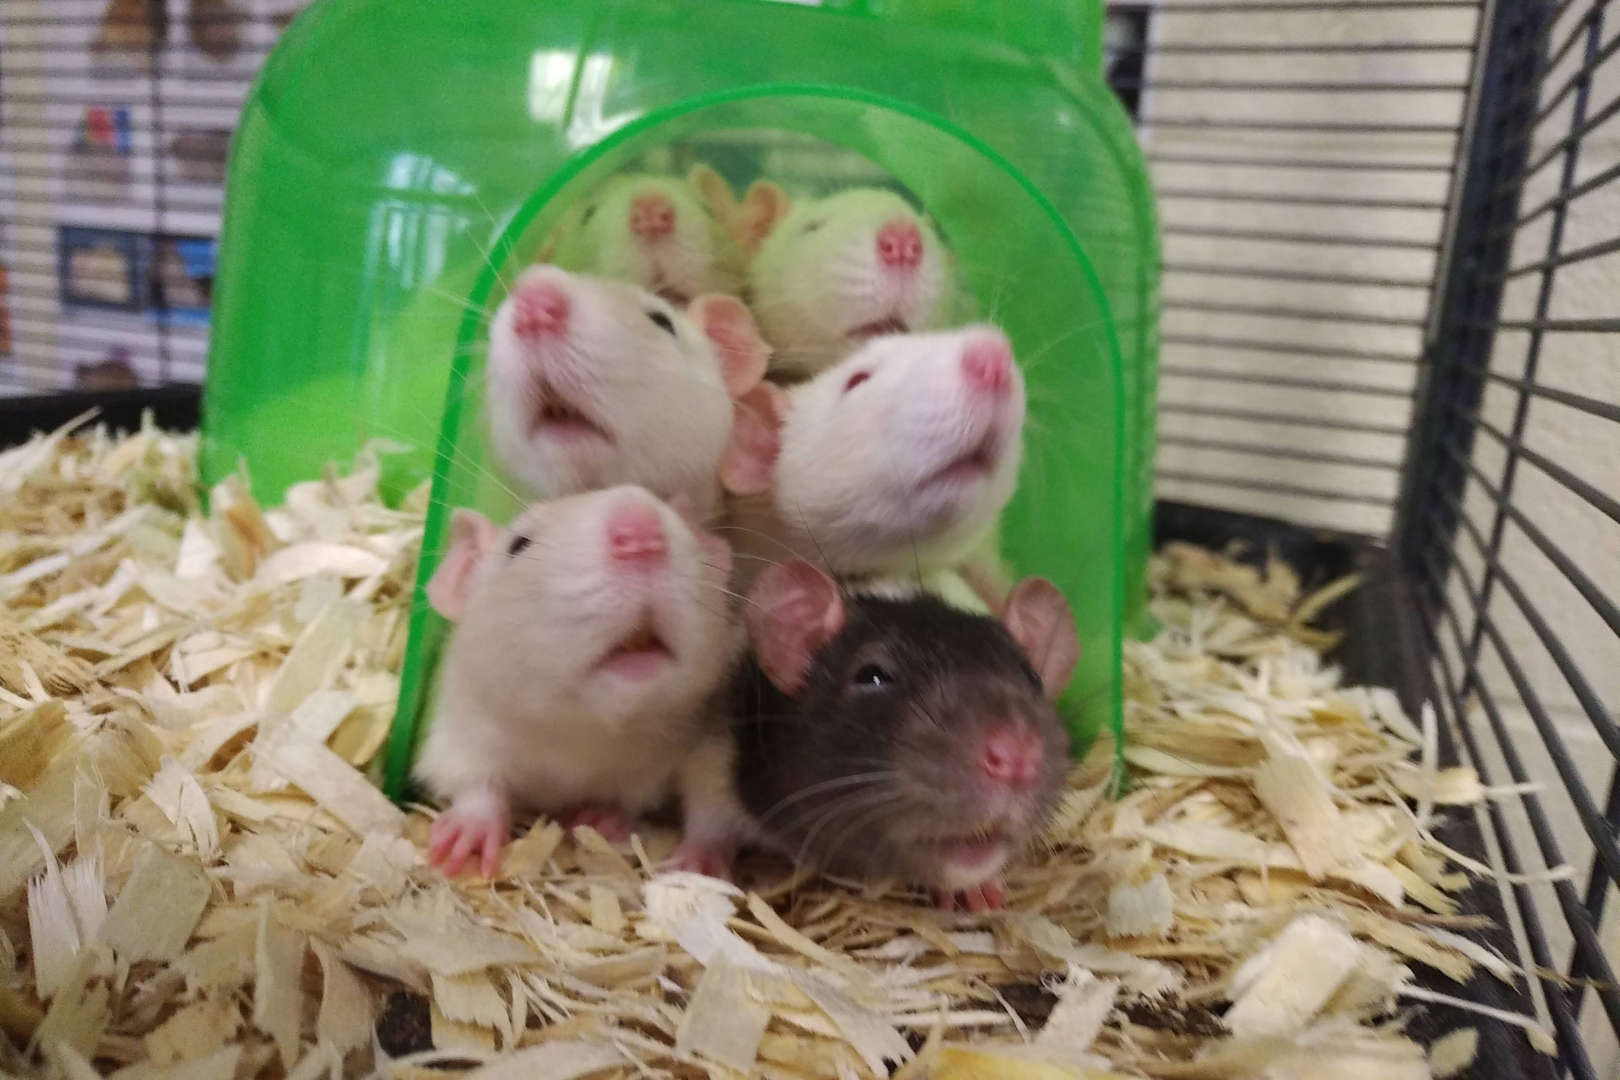 Rats stick their heads out of a green dome